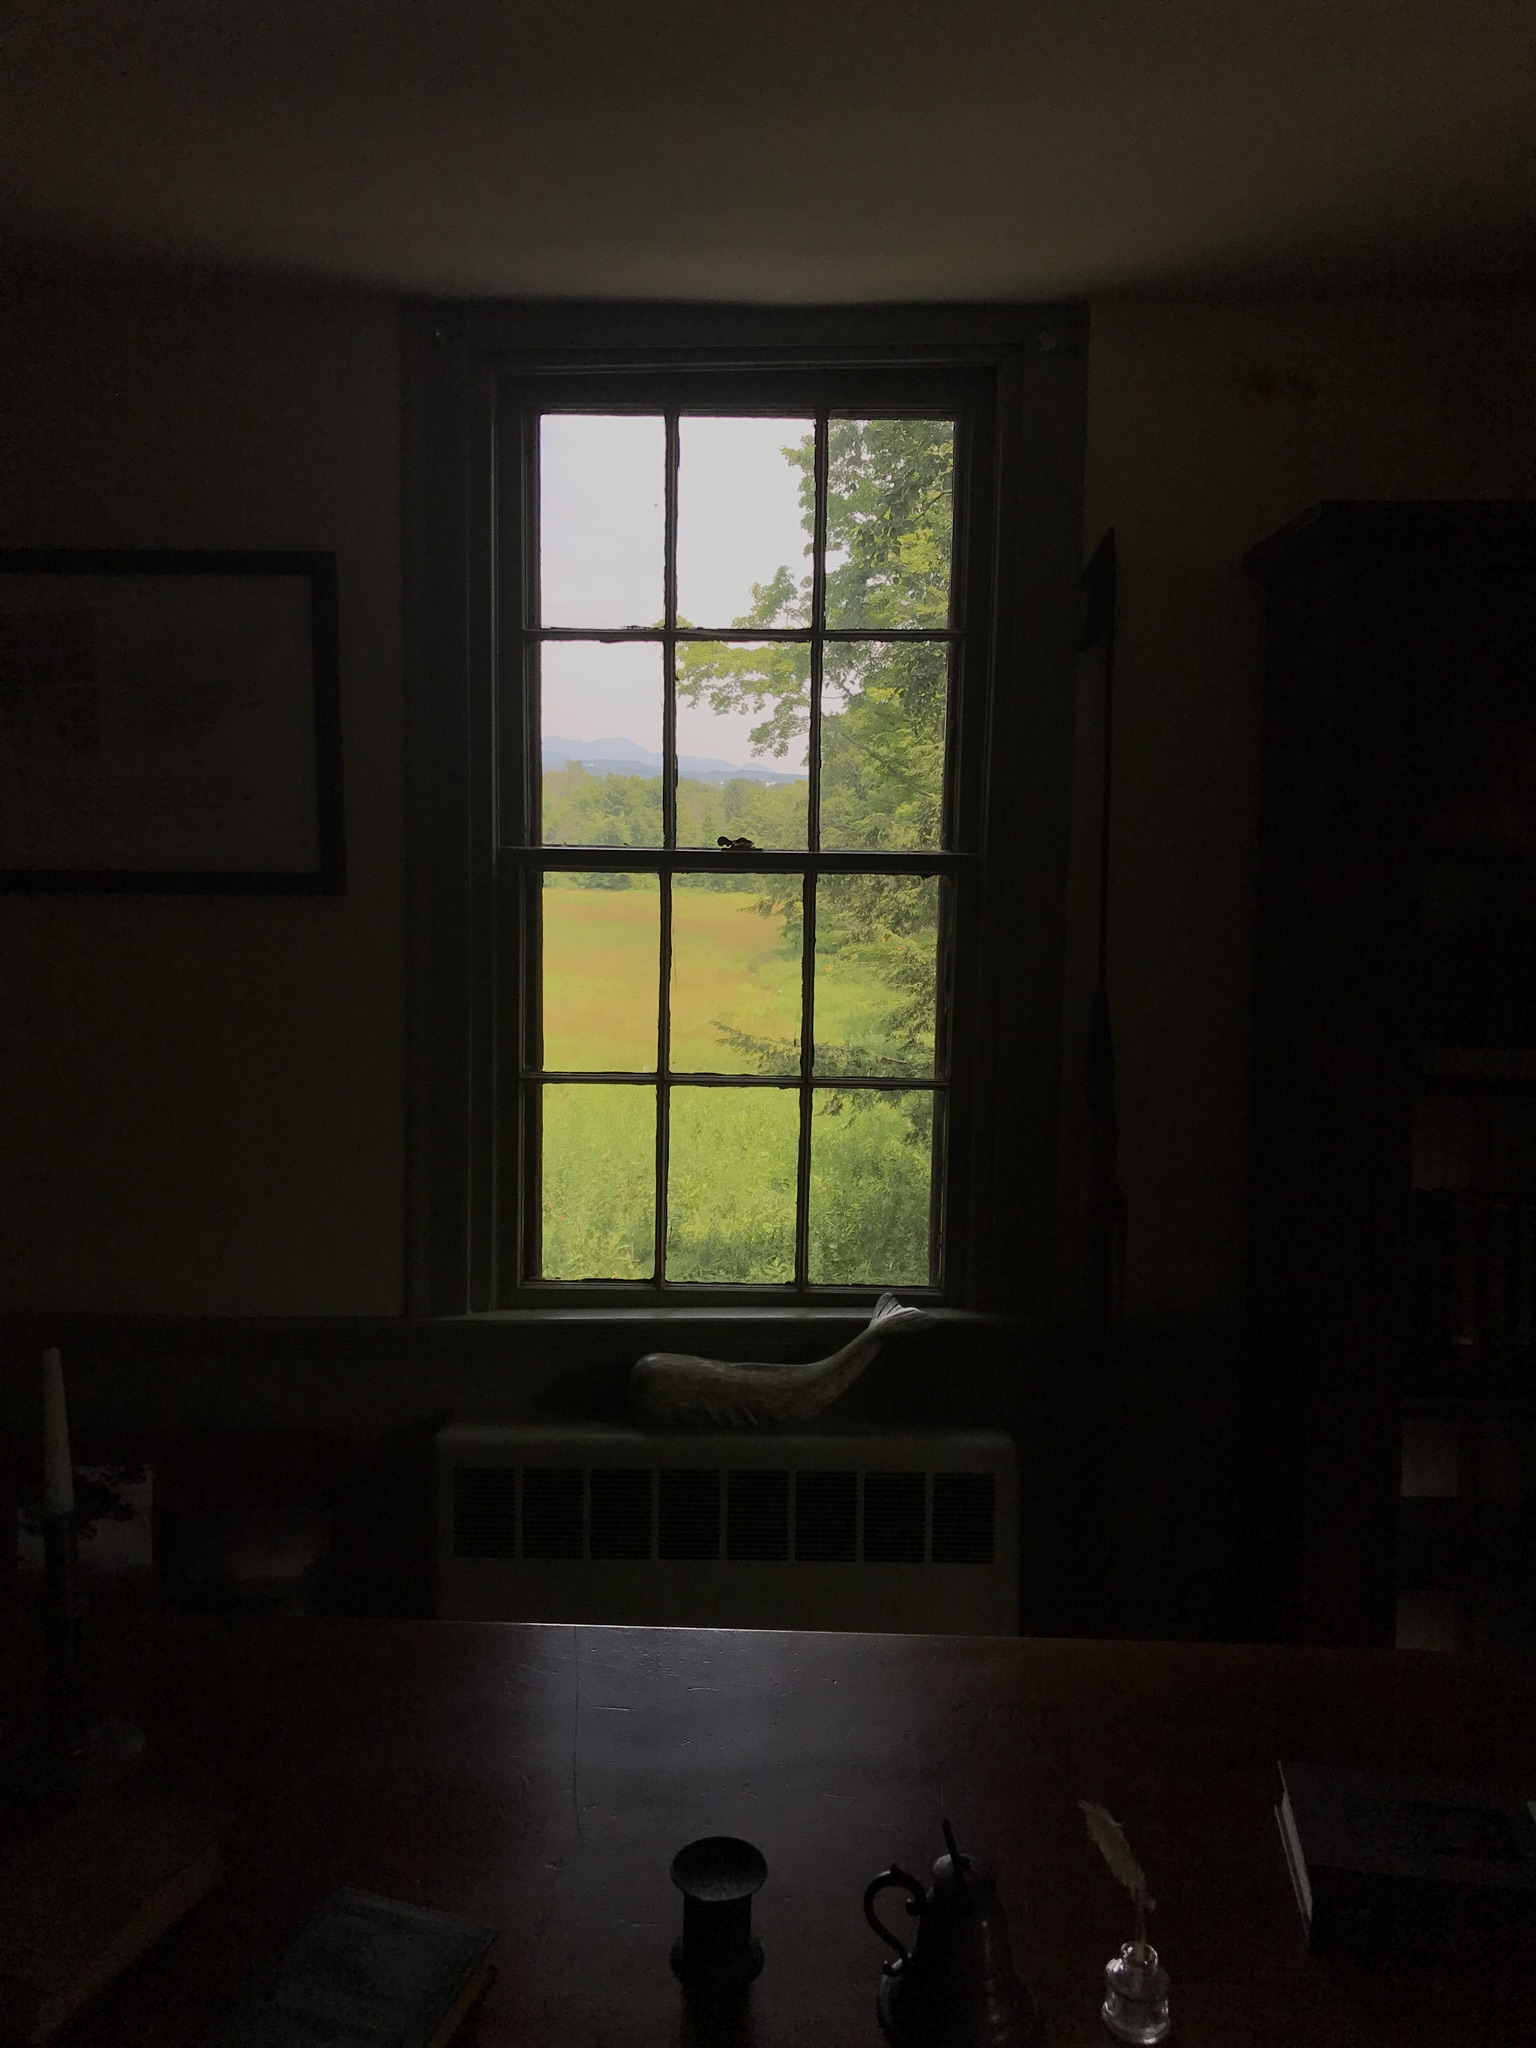 This was Herman Melville's view while writing  Moby Dick . In the distance you can see Mount Greylock.